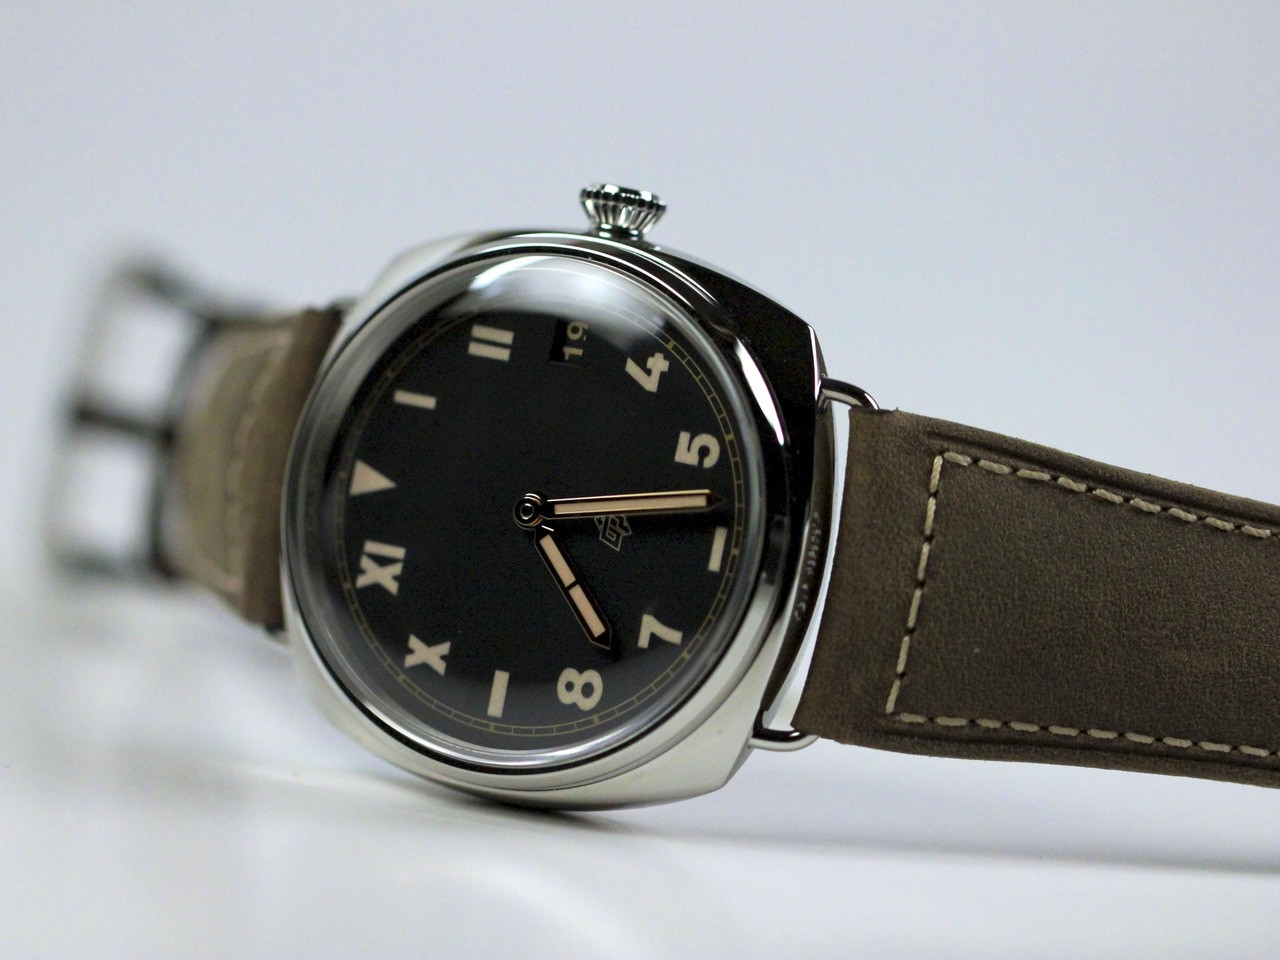 New Panerai Watch - Radiomir California 3 Days PAM 424 - www.Legendoftime.com - Chicago Watch Center